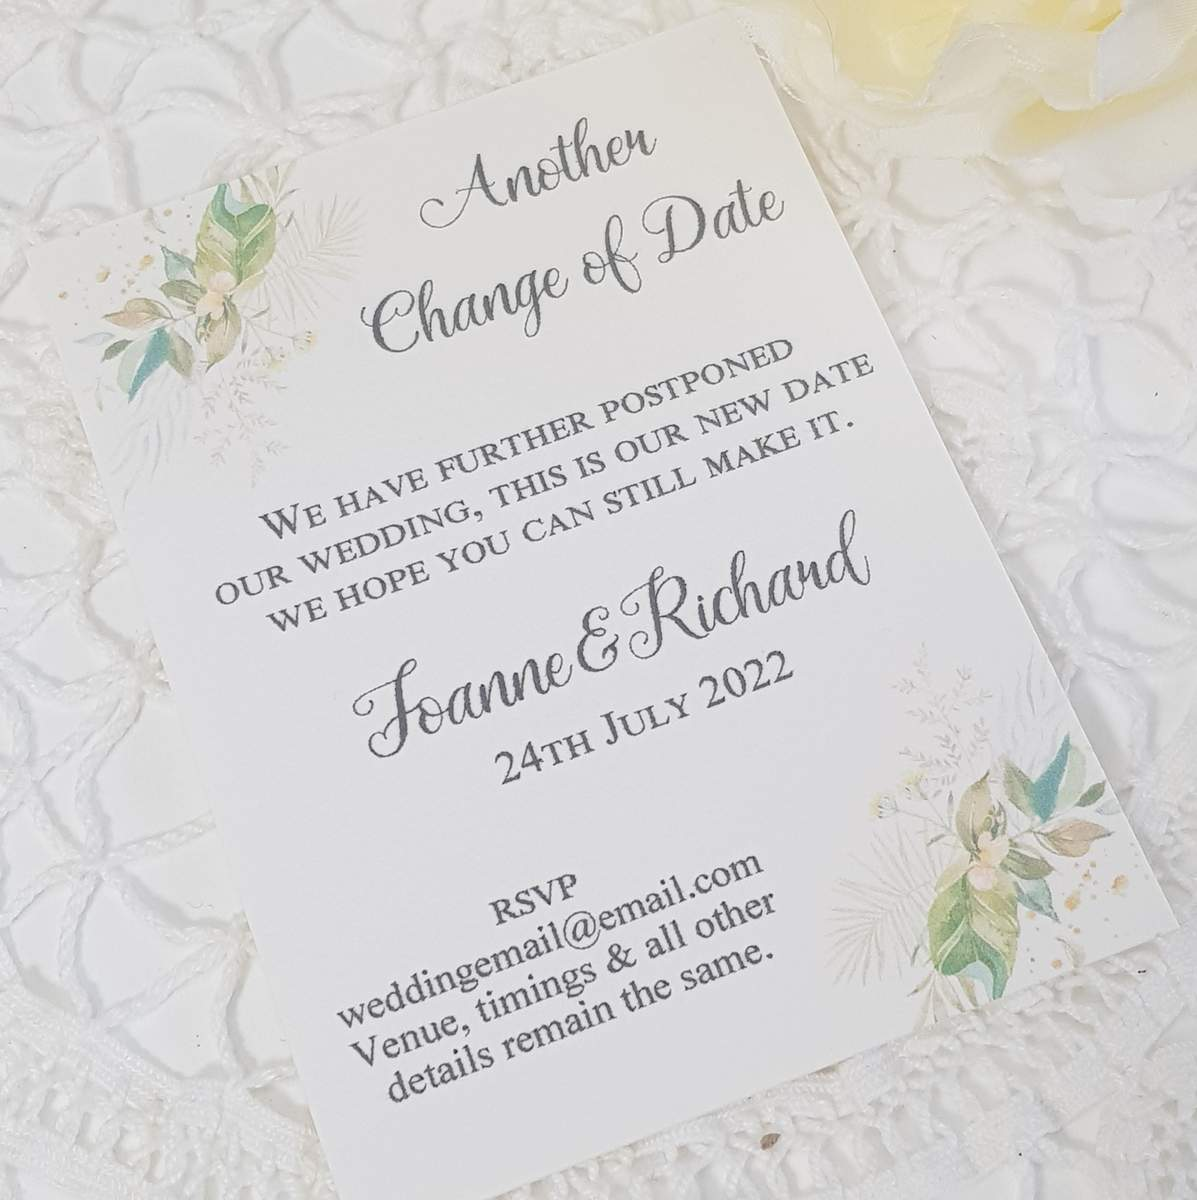 wedding change the date card with woodland foliage and ferns design